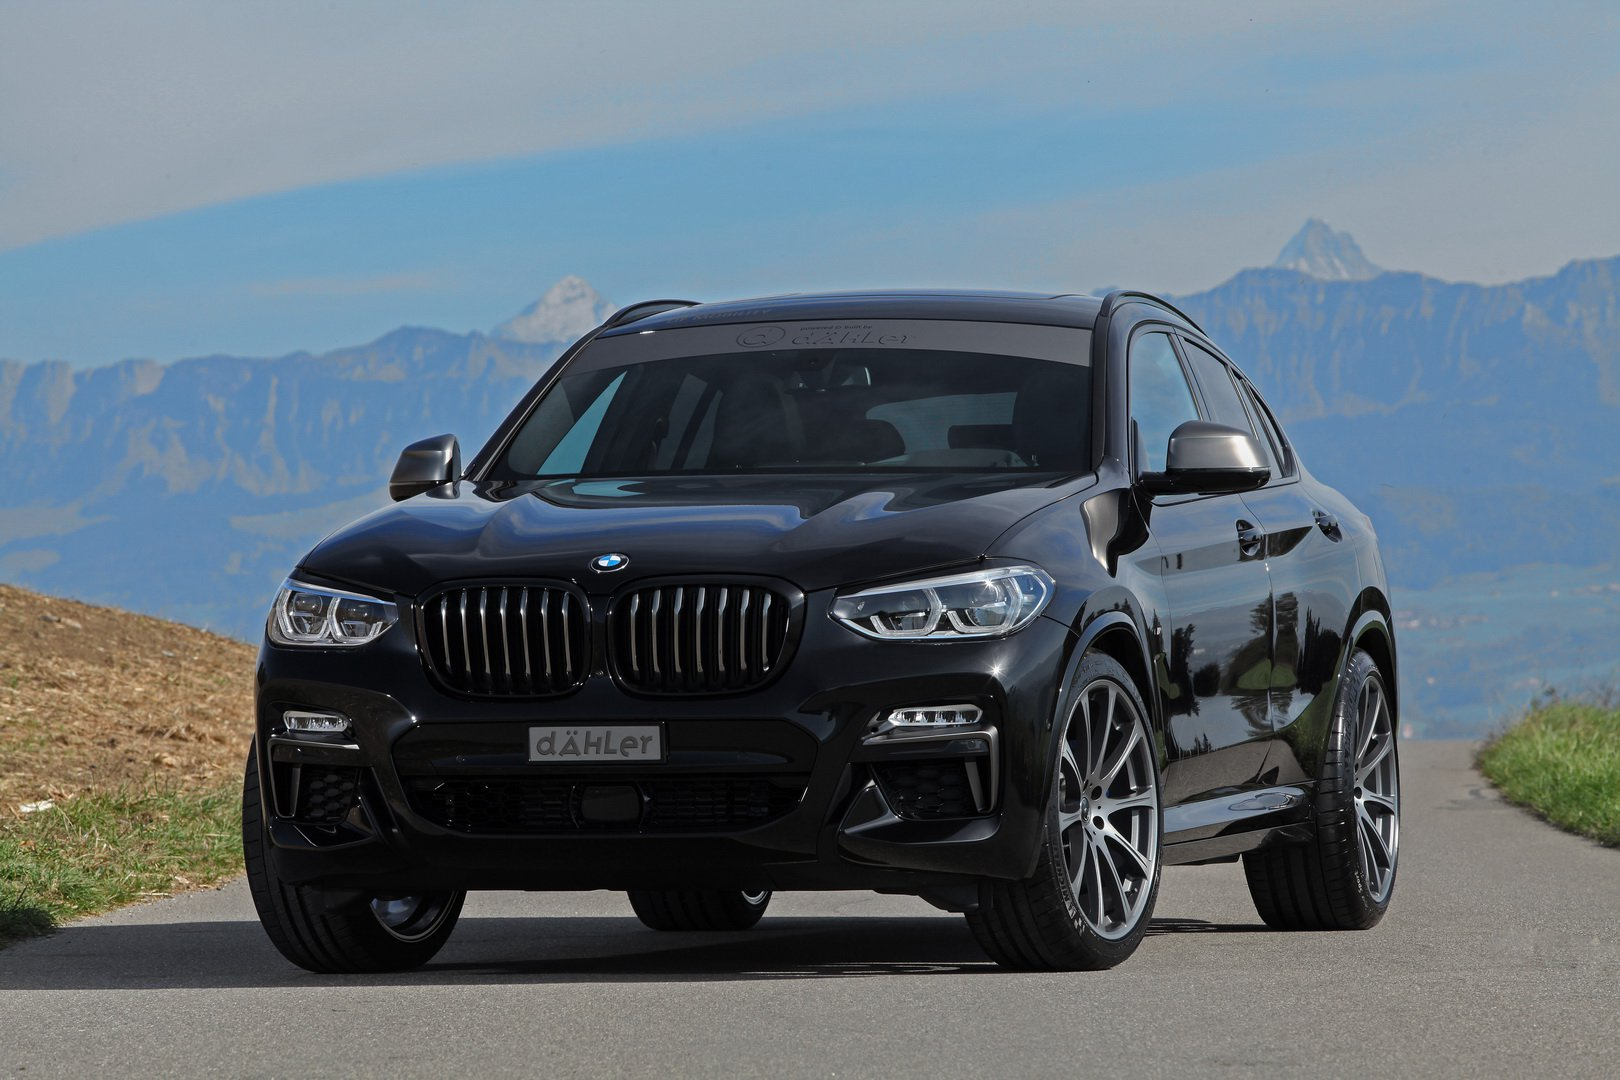 Bmw X4 M40i Gets 420 Hp And Dark Theme From Dahler